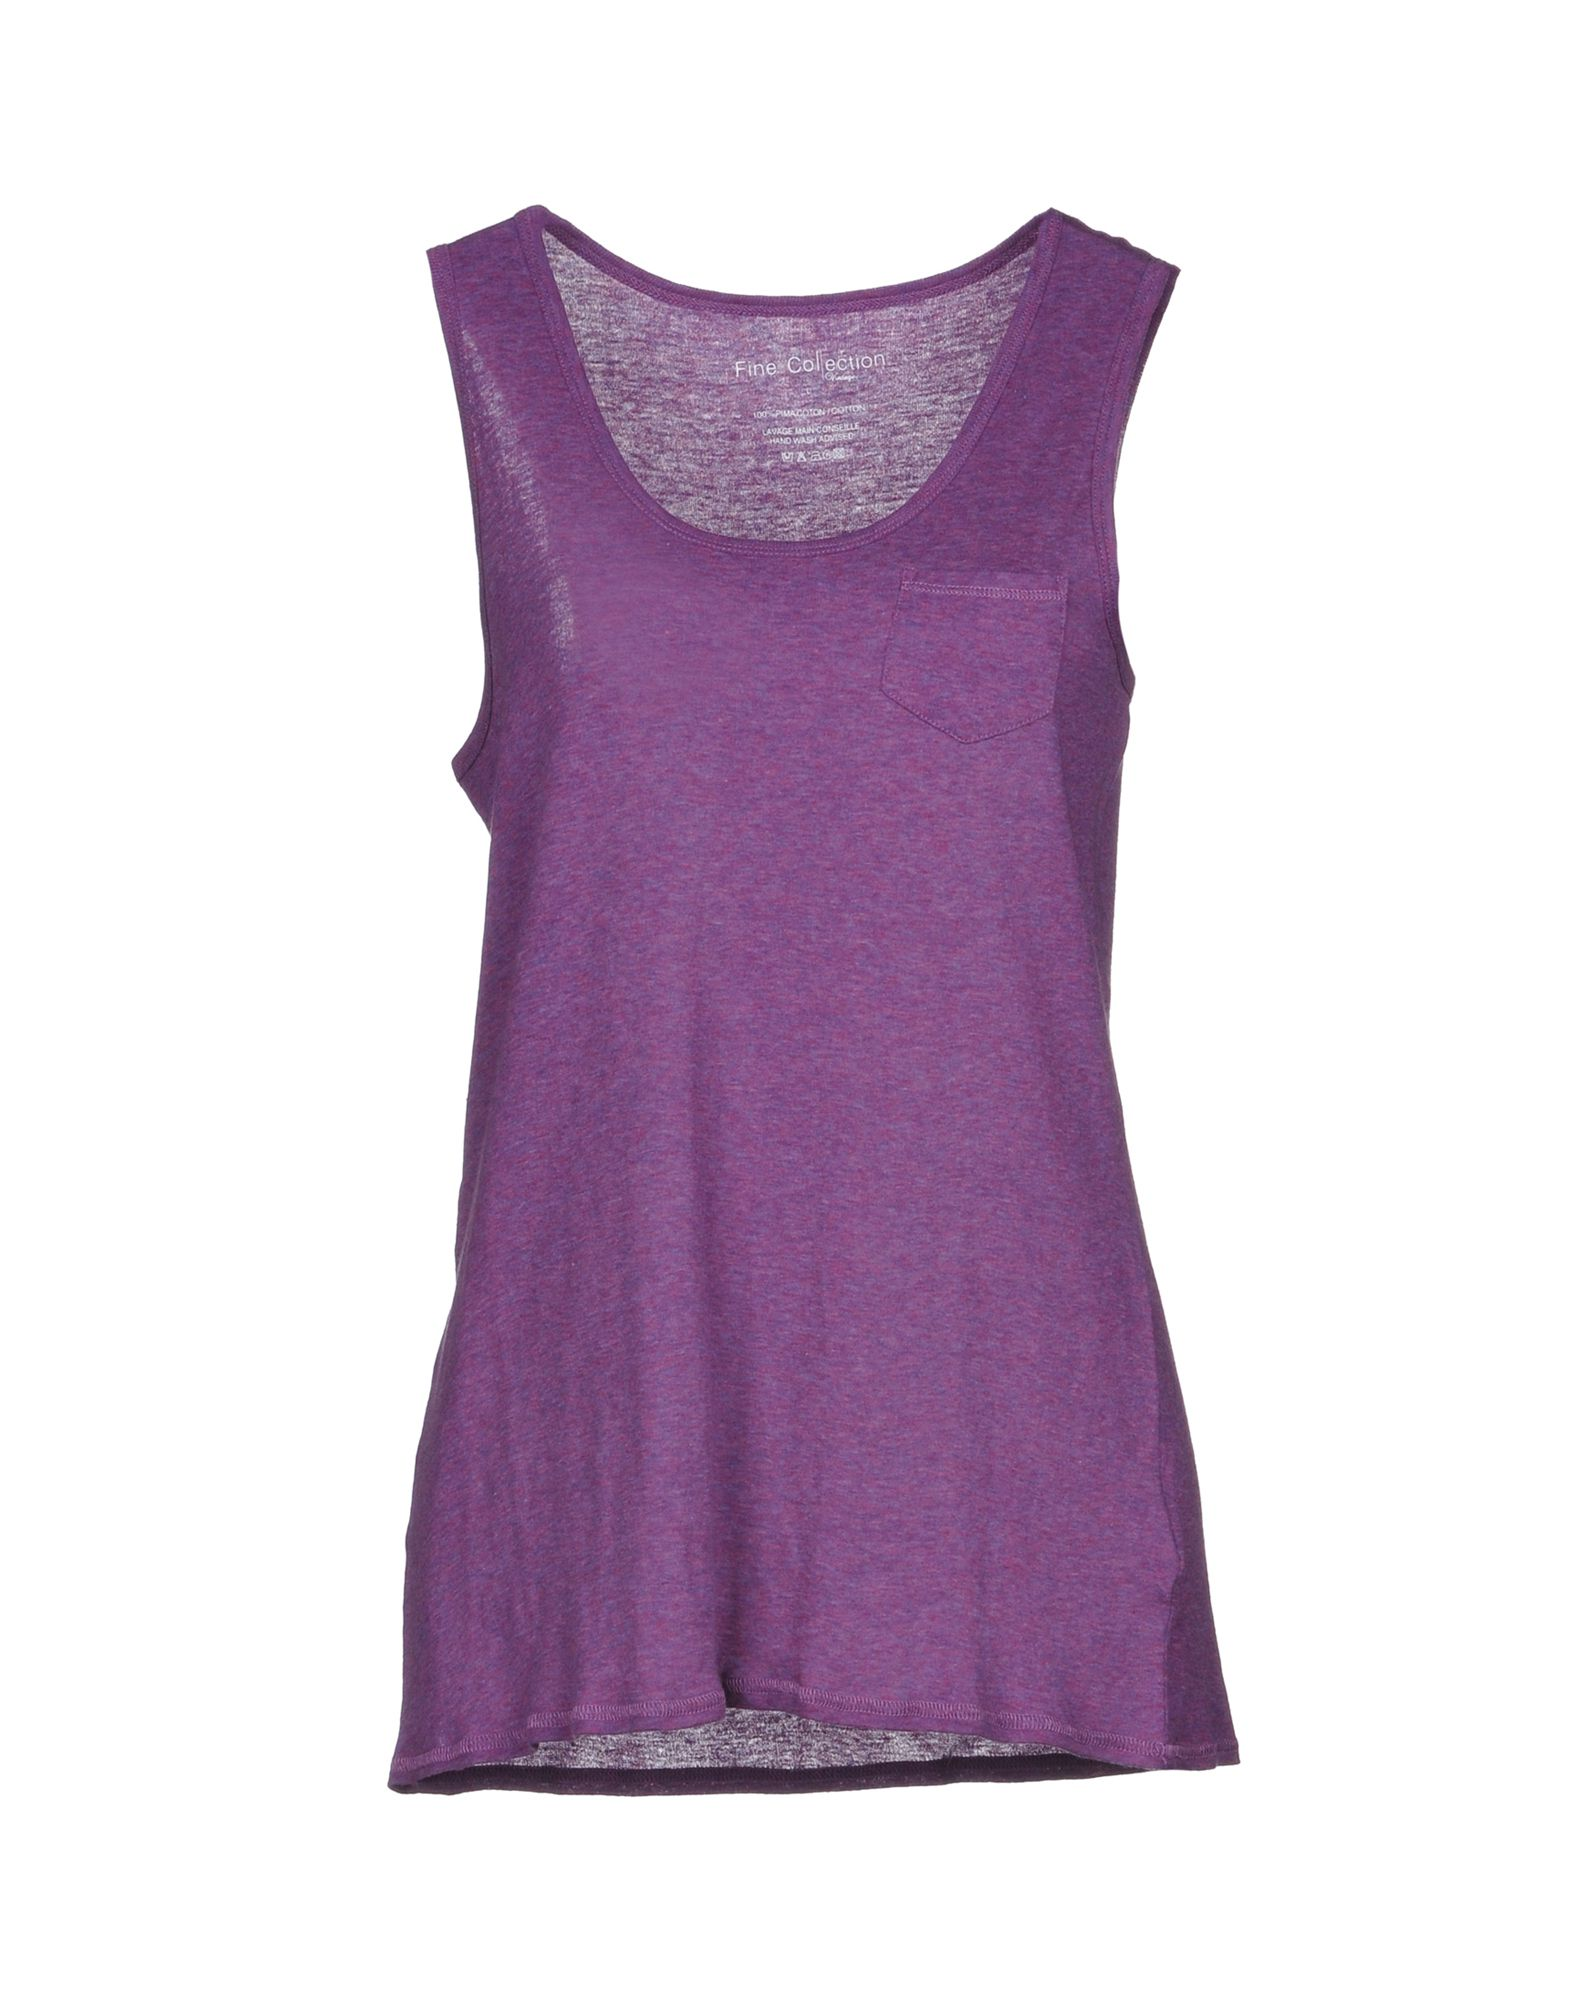 FINE COLLECTION Tank Top in Purple